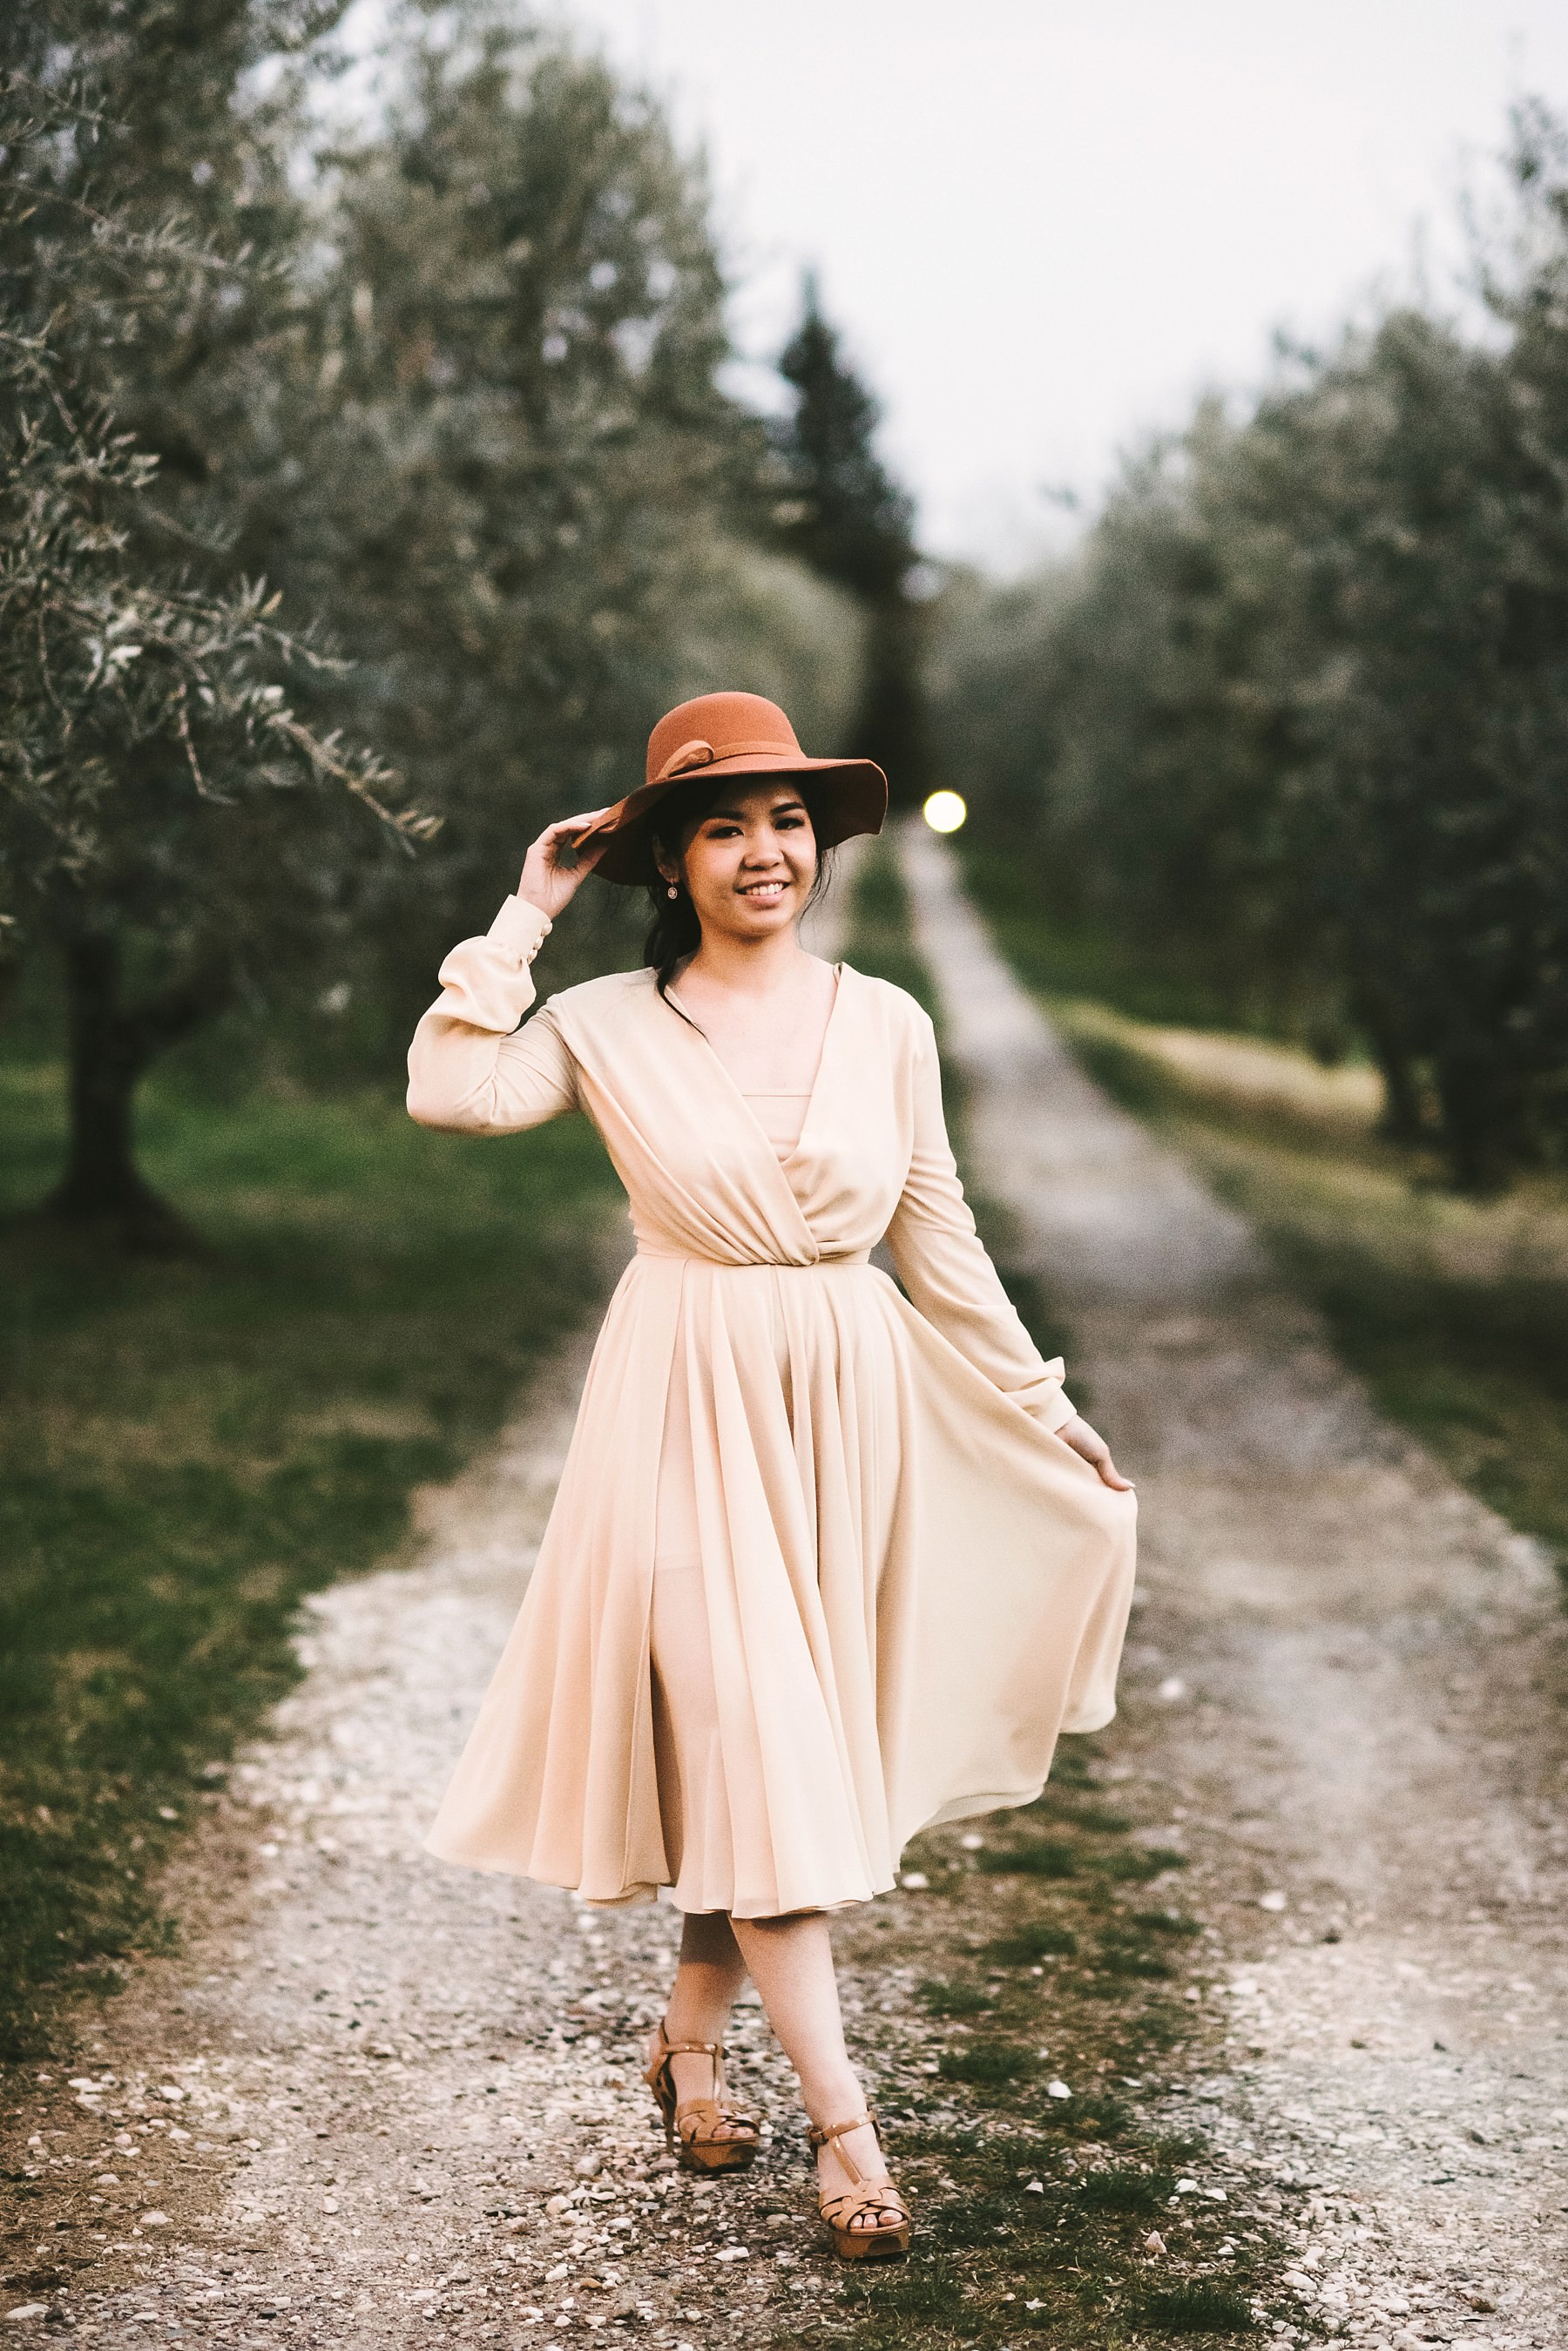 Lovely Natania pose for engagement couple photo shoot in Chianti area of Tuscany countryside into a white street near Olive trees field